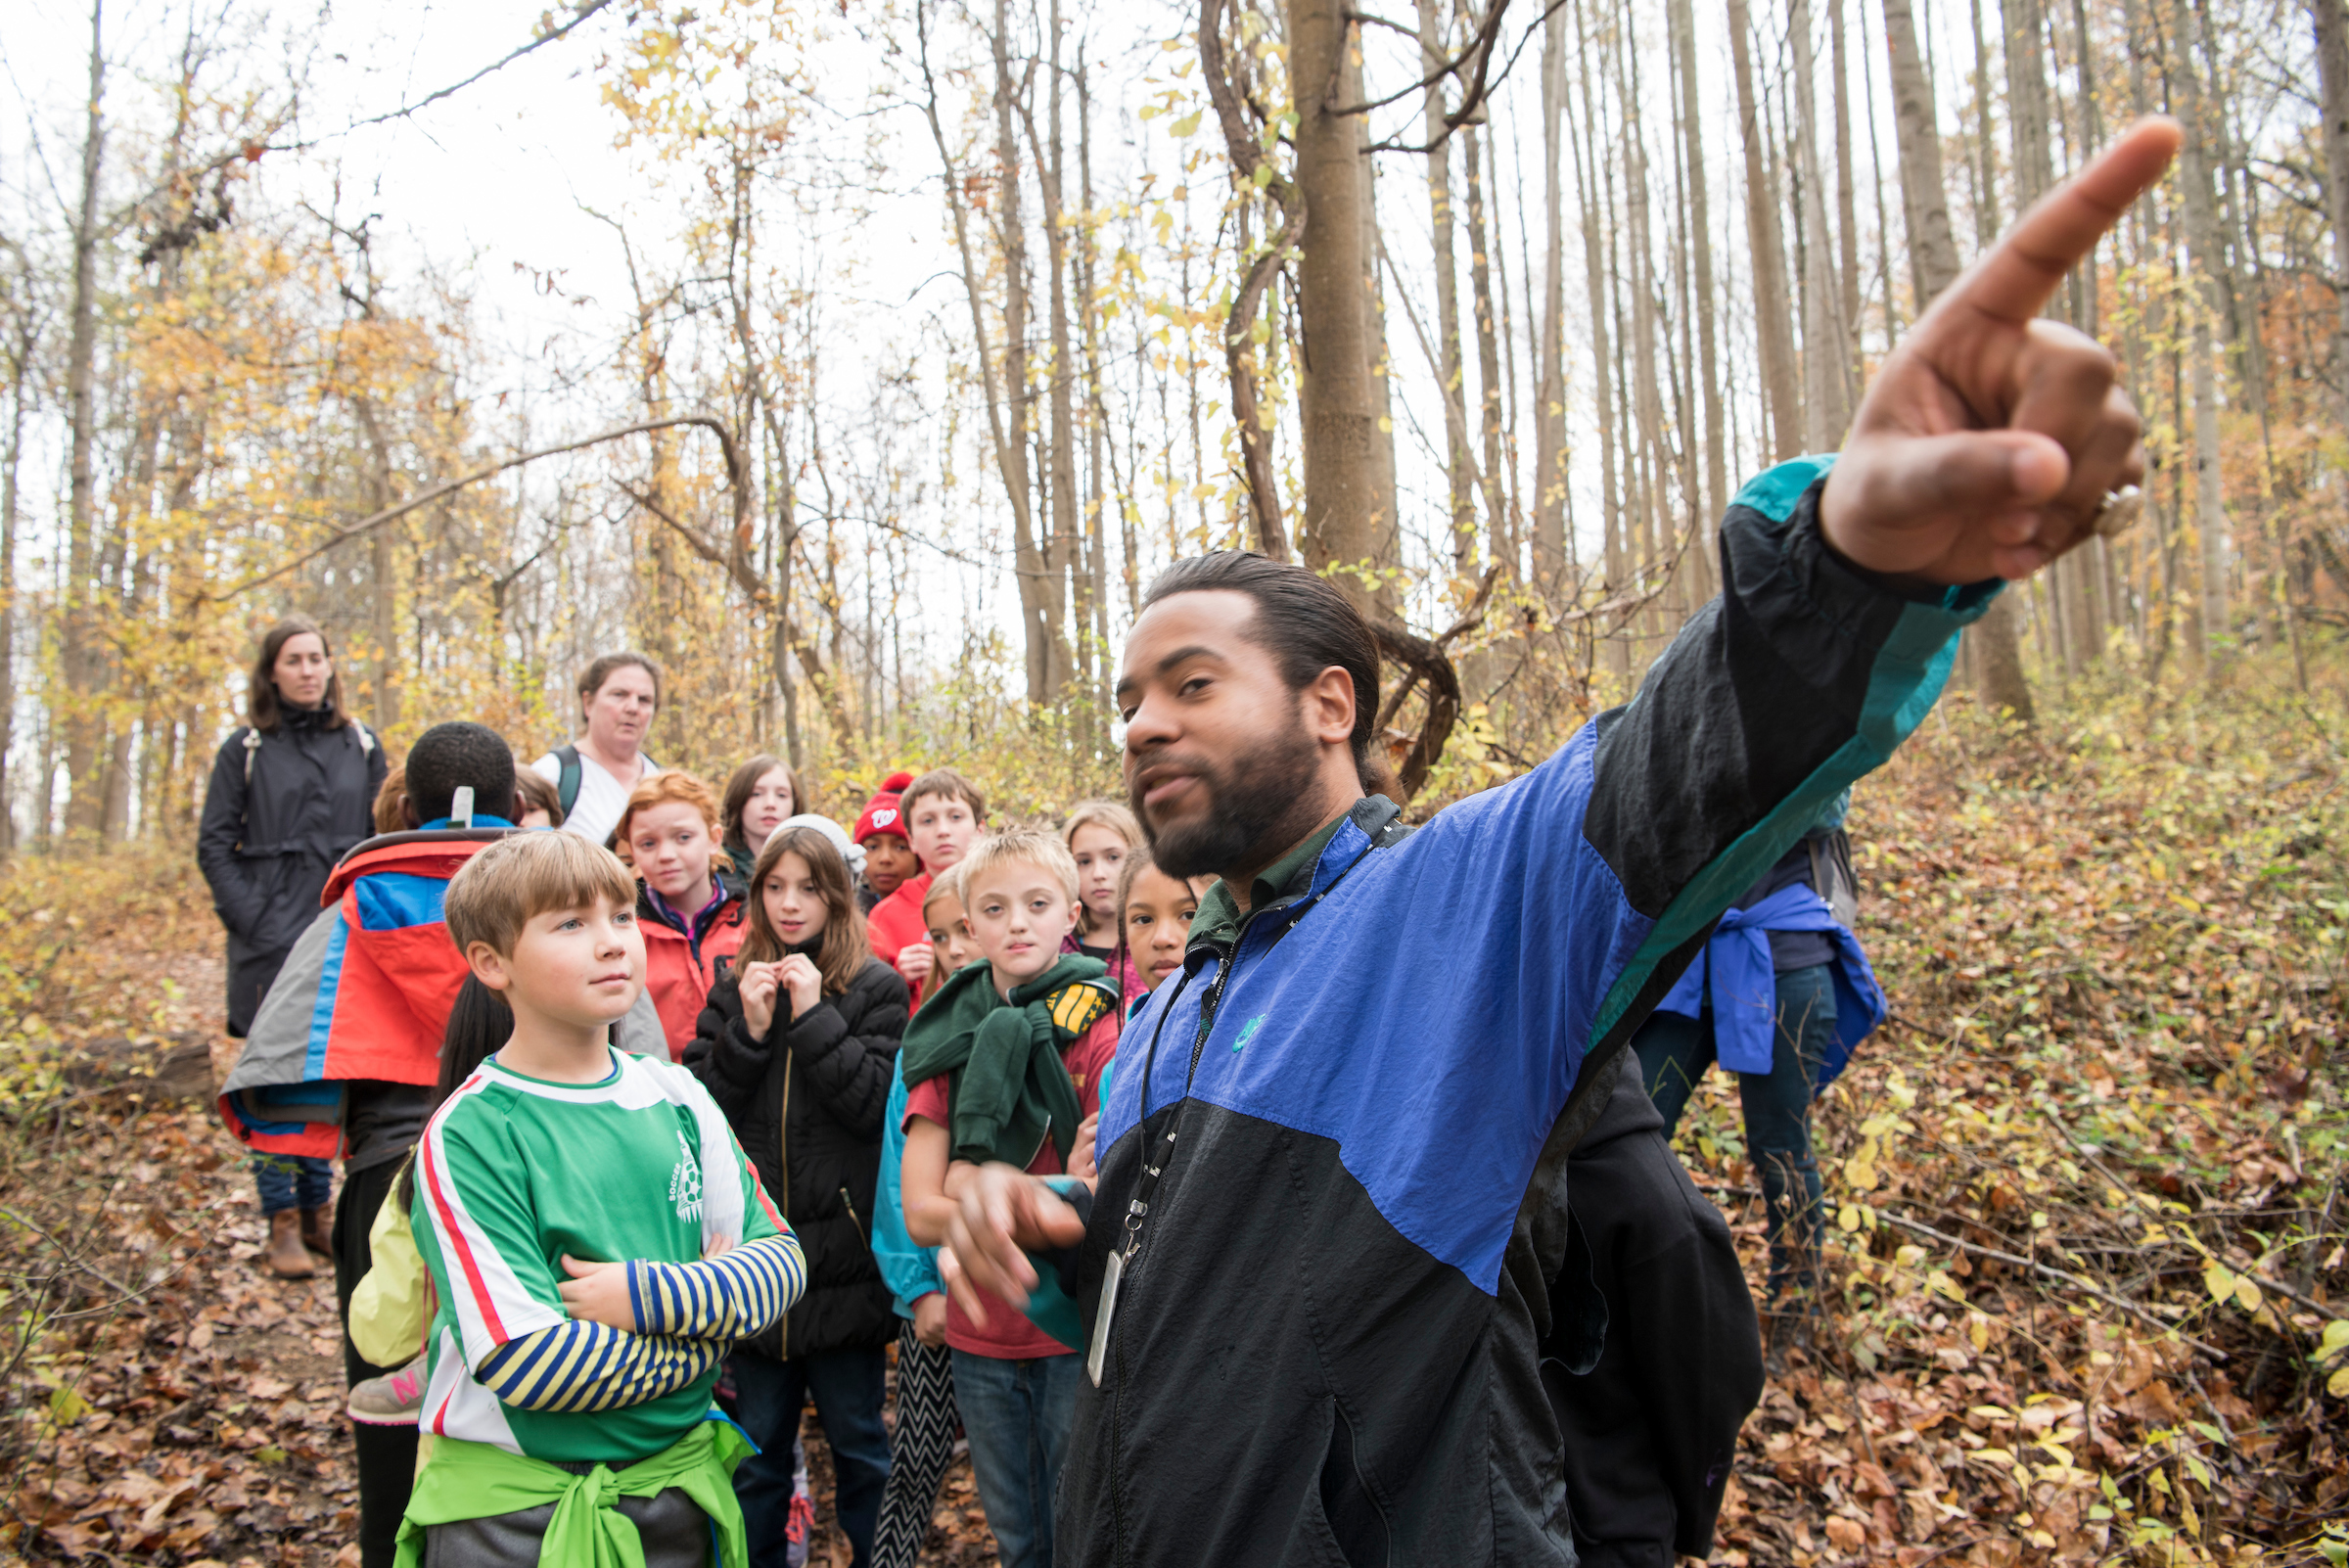 Students listening to an expert in the woods on a field trip.